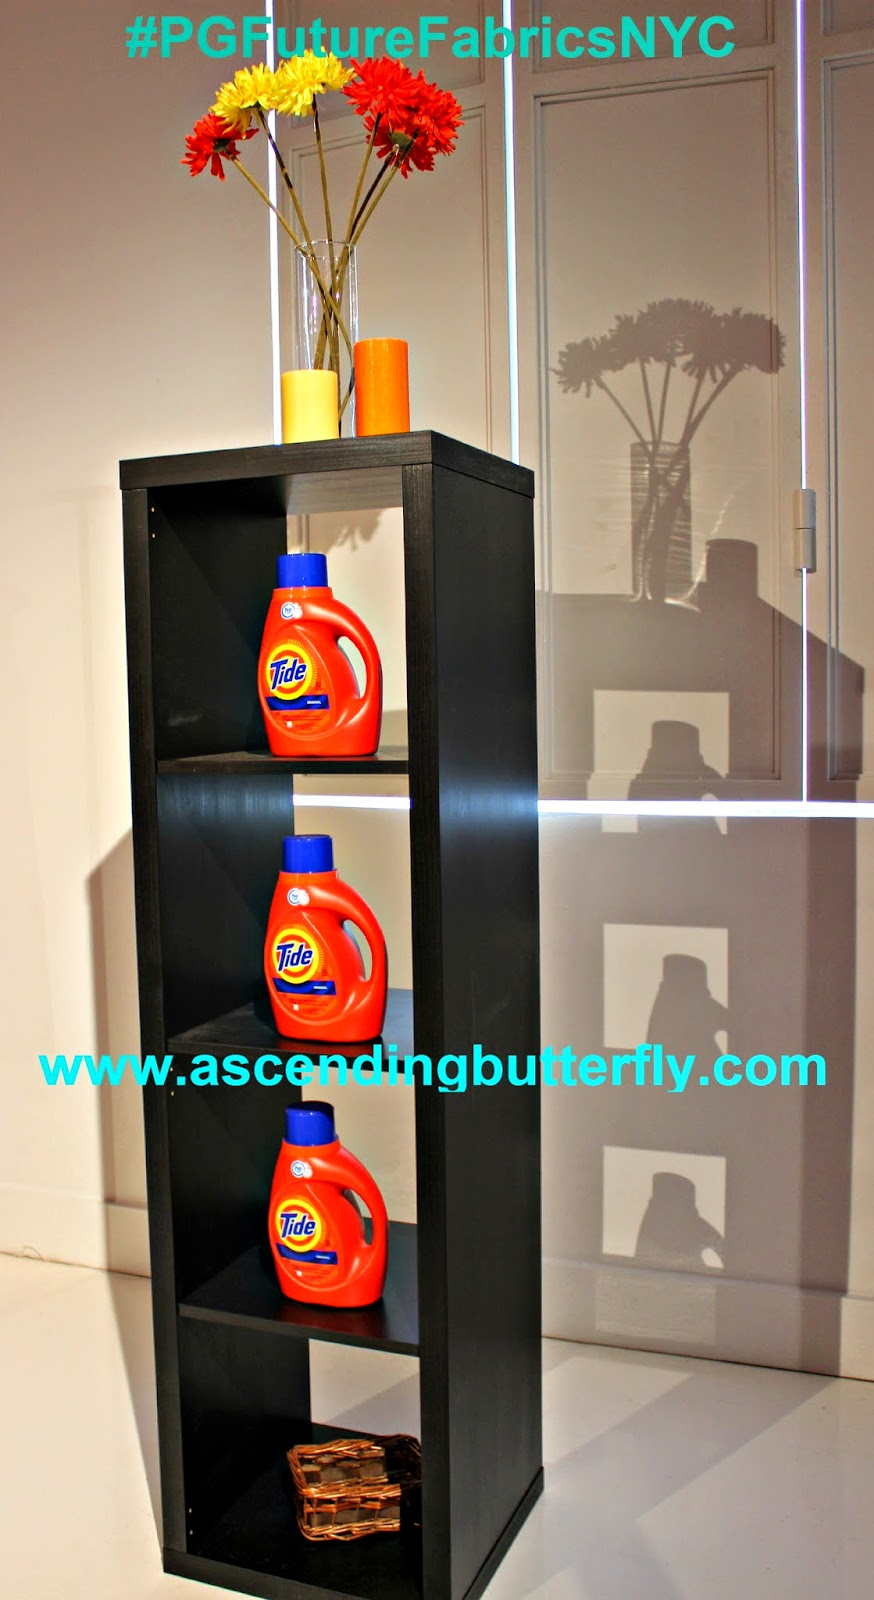 Display of Tide Products #PGFutureFabricsNYC